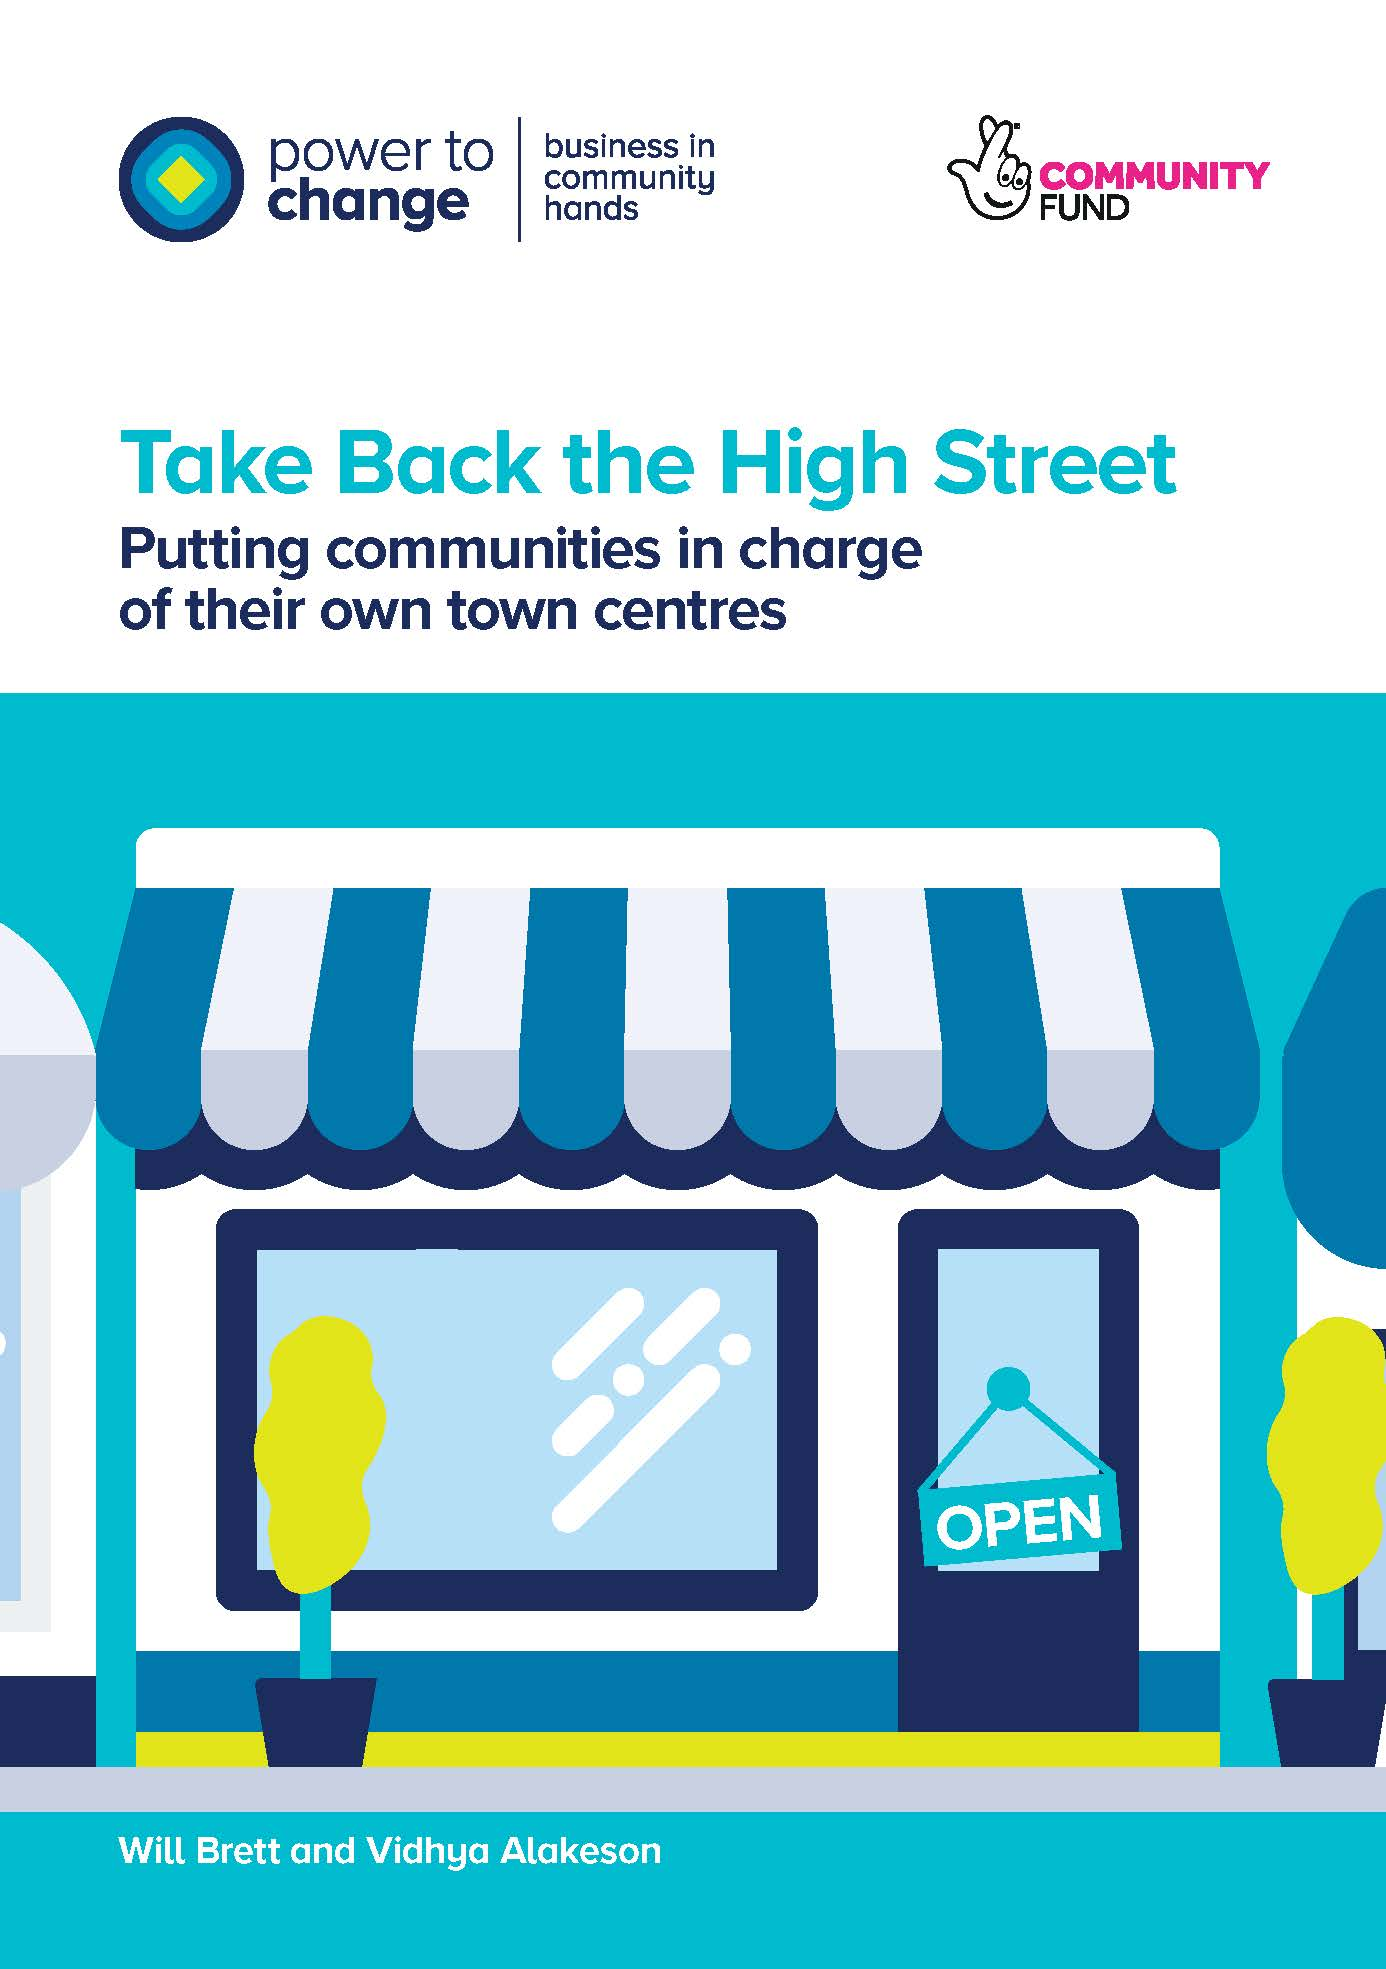 Take Back the High Street: Putting communities in charge of their own town centres